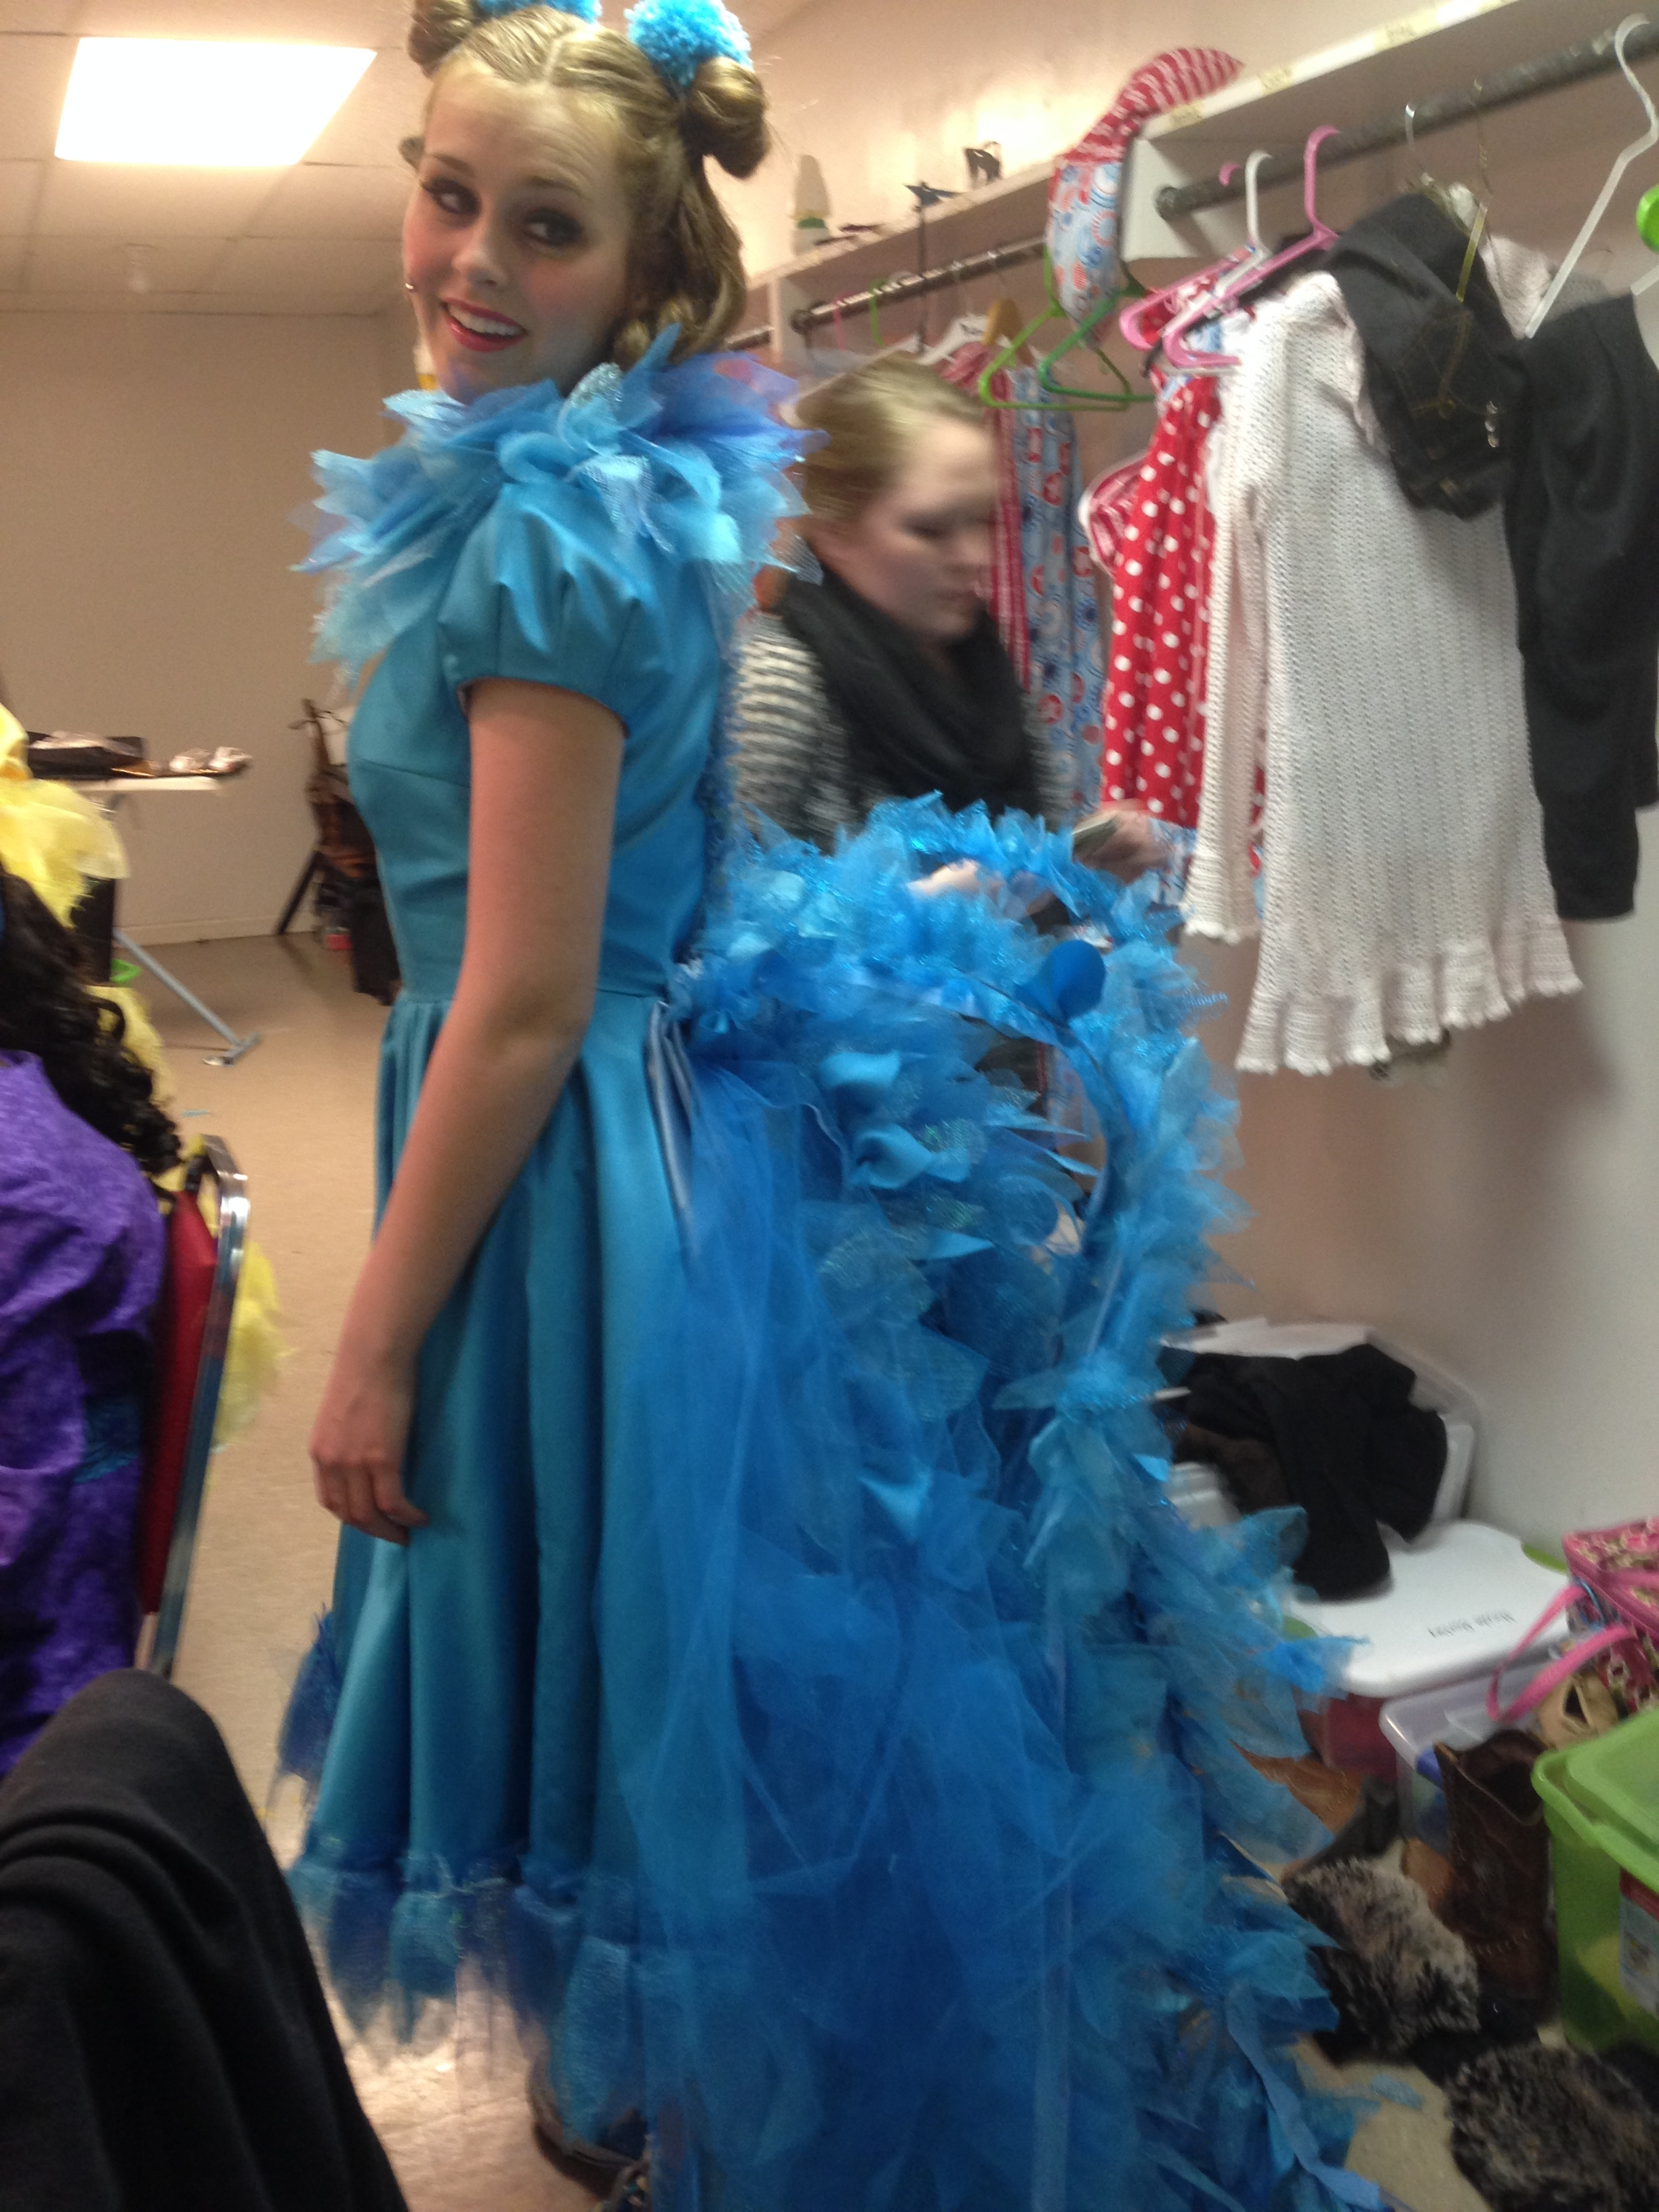 Stand Collar Designs : Gertrude mcfuzz s tail for seussical angela wood designs